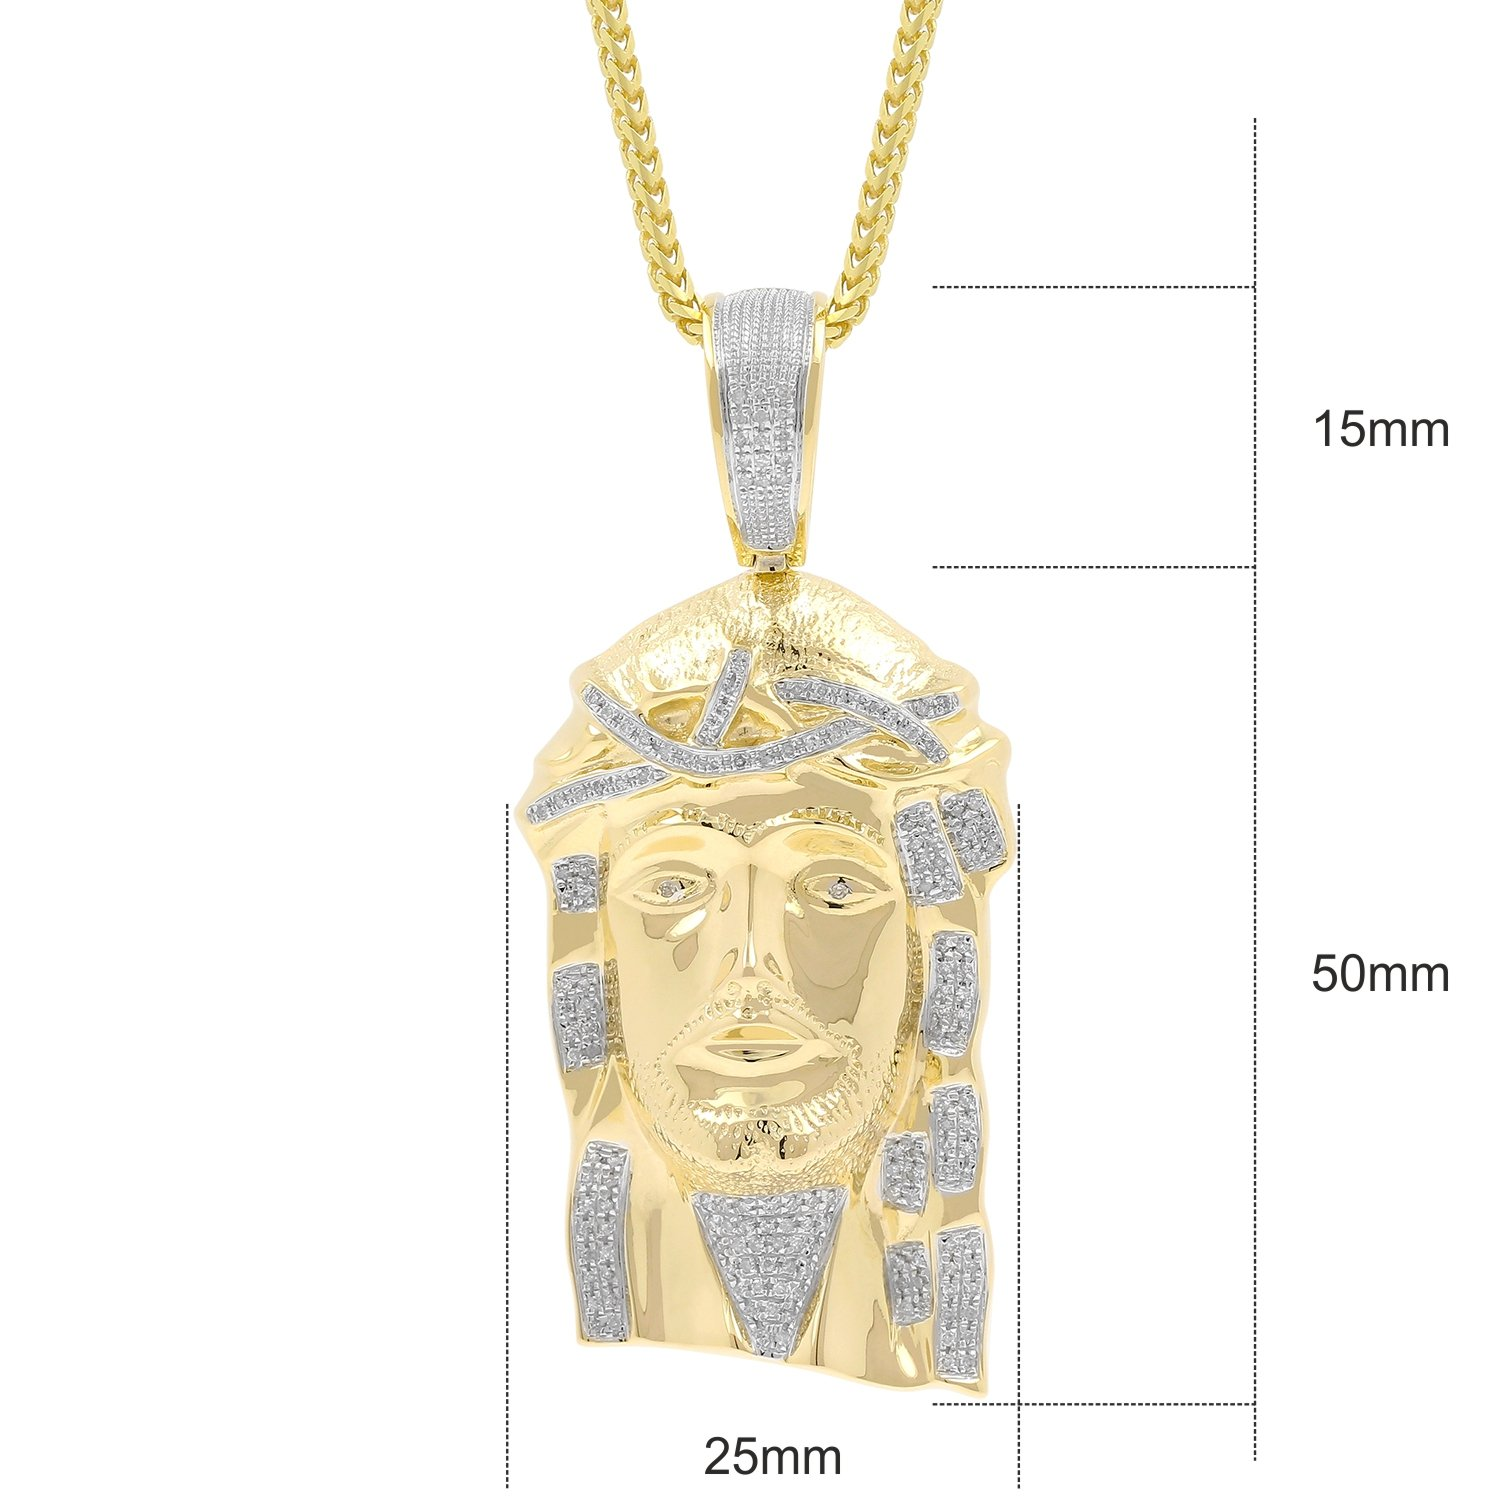 0.52ct Diamond Jesus Face Religious Mens Hip Hop Pendant in Yellow Gold Over 925 Silver (I-J, I1-I2) by Isha Luxe-Hip Hop Bling (Image #2)